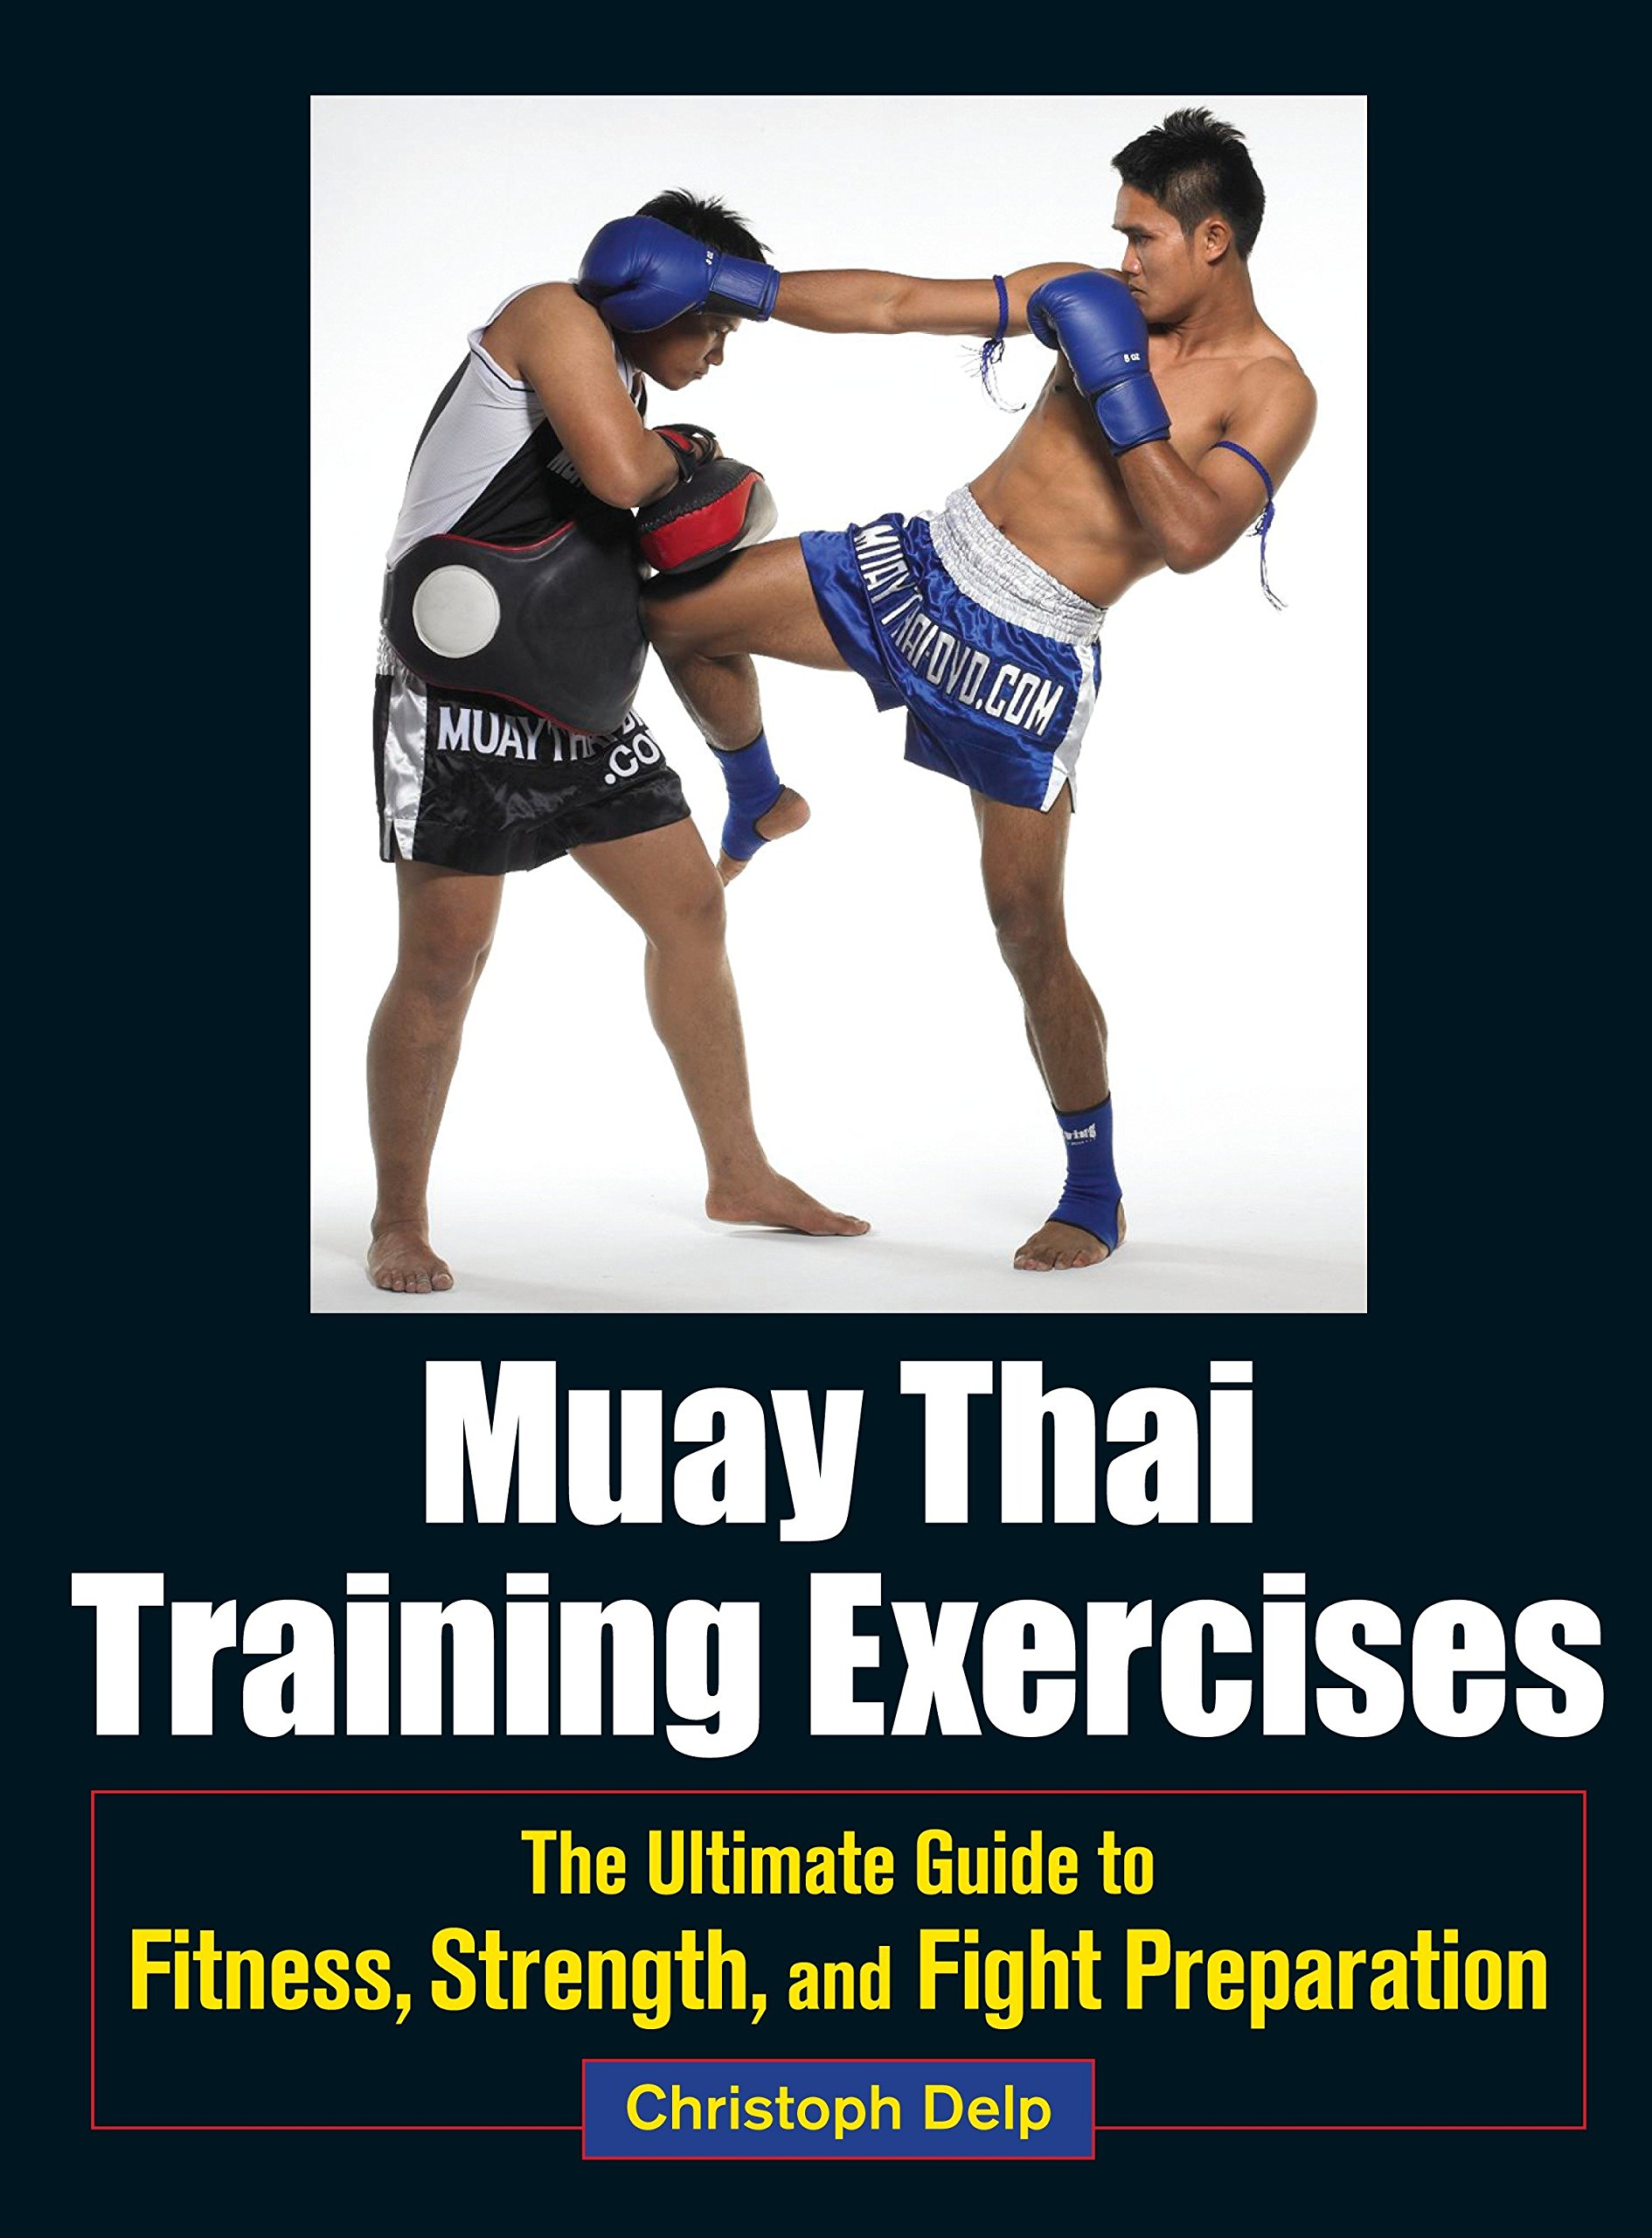 Read Online Muay Thai Training Exercises: The Ultimate Guide to Fitness, Strength, and Fight Preparation PDF